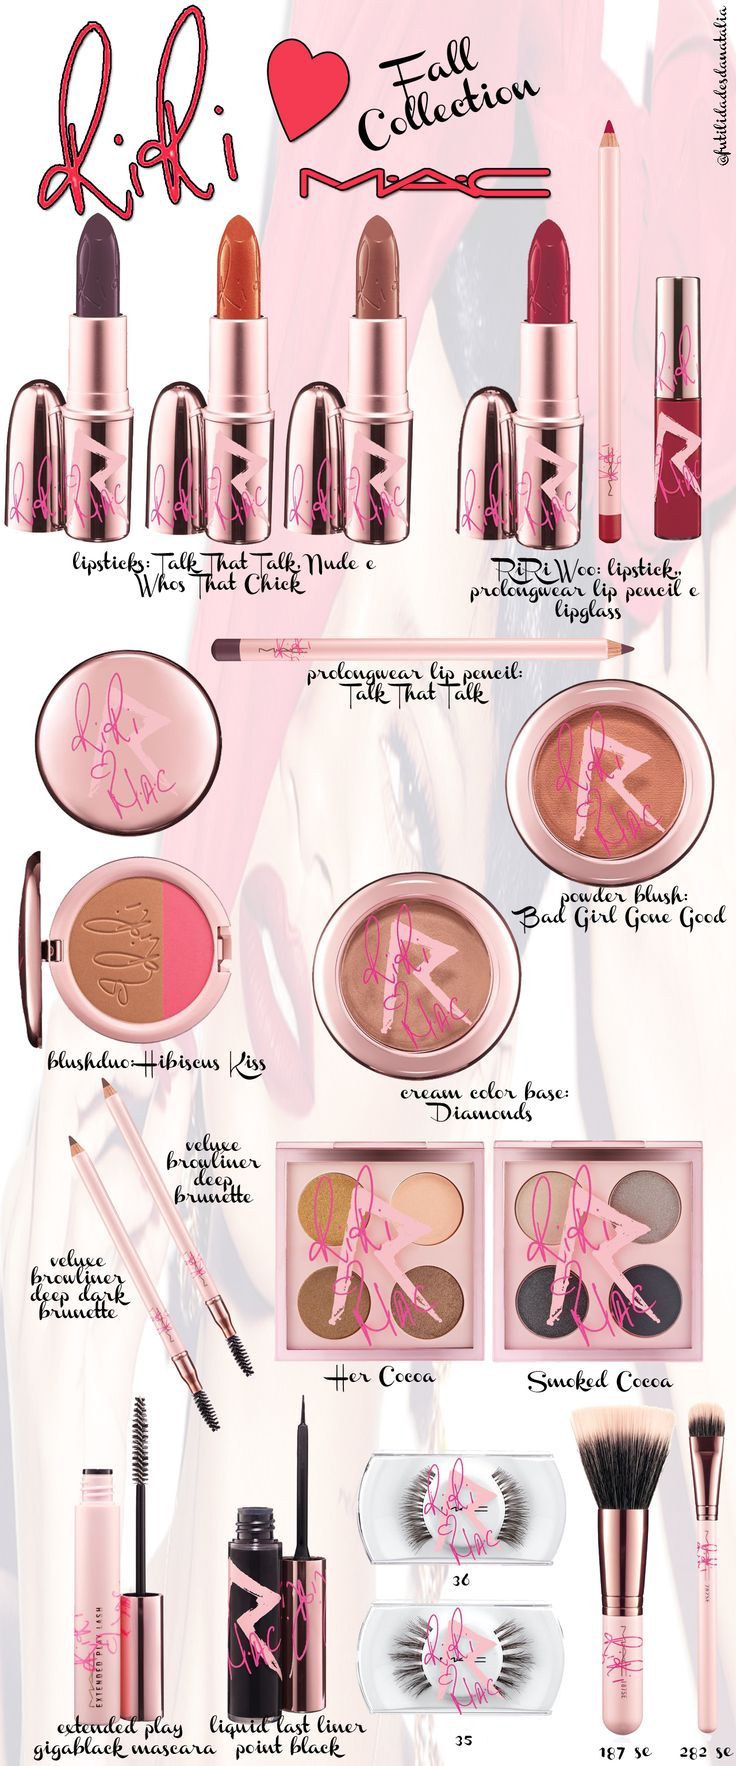 riri-hearts-mac-fal-collection